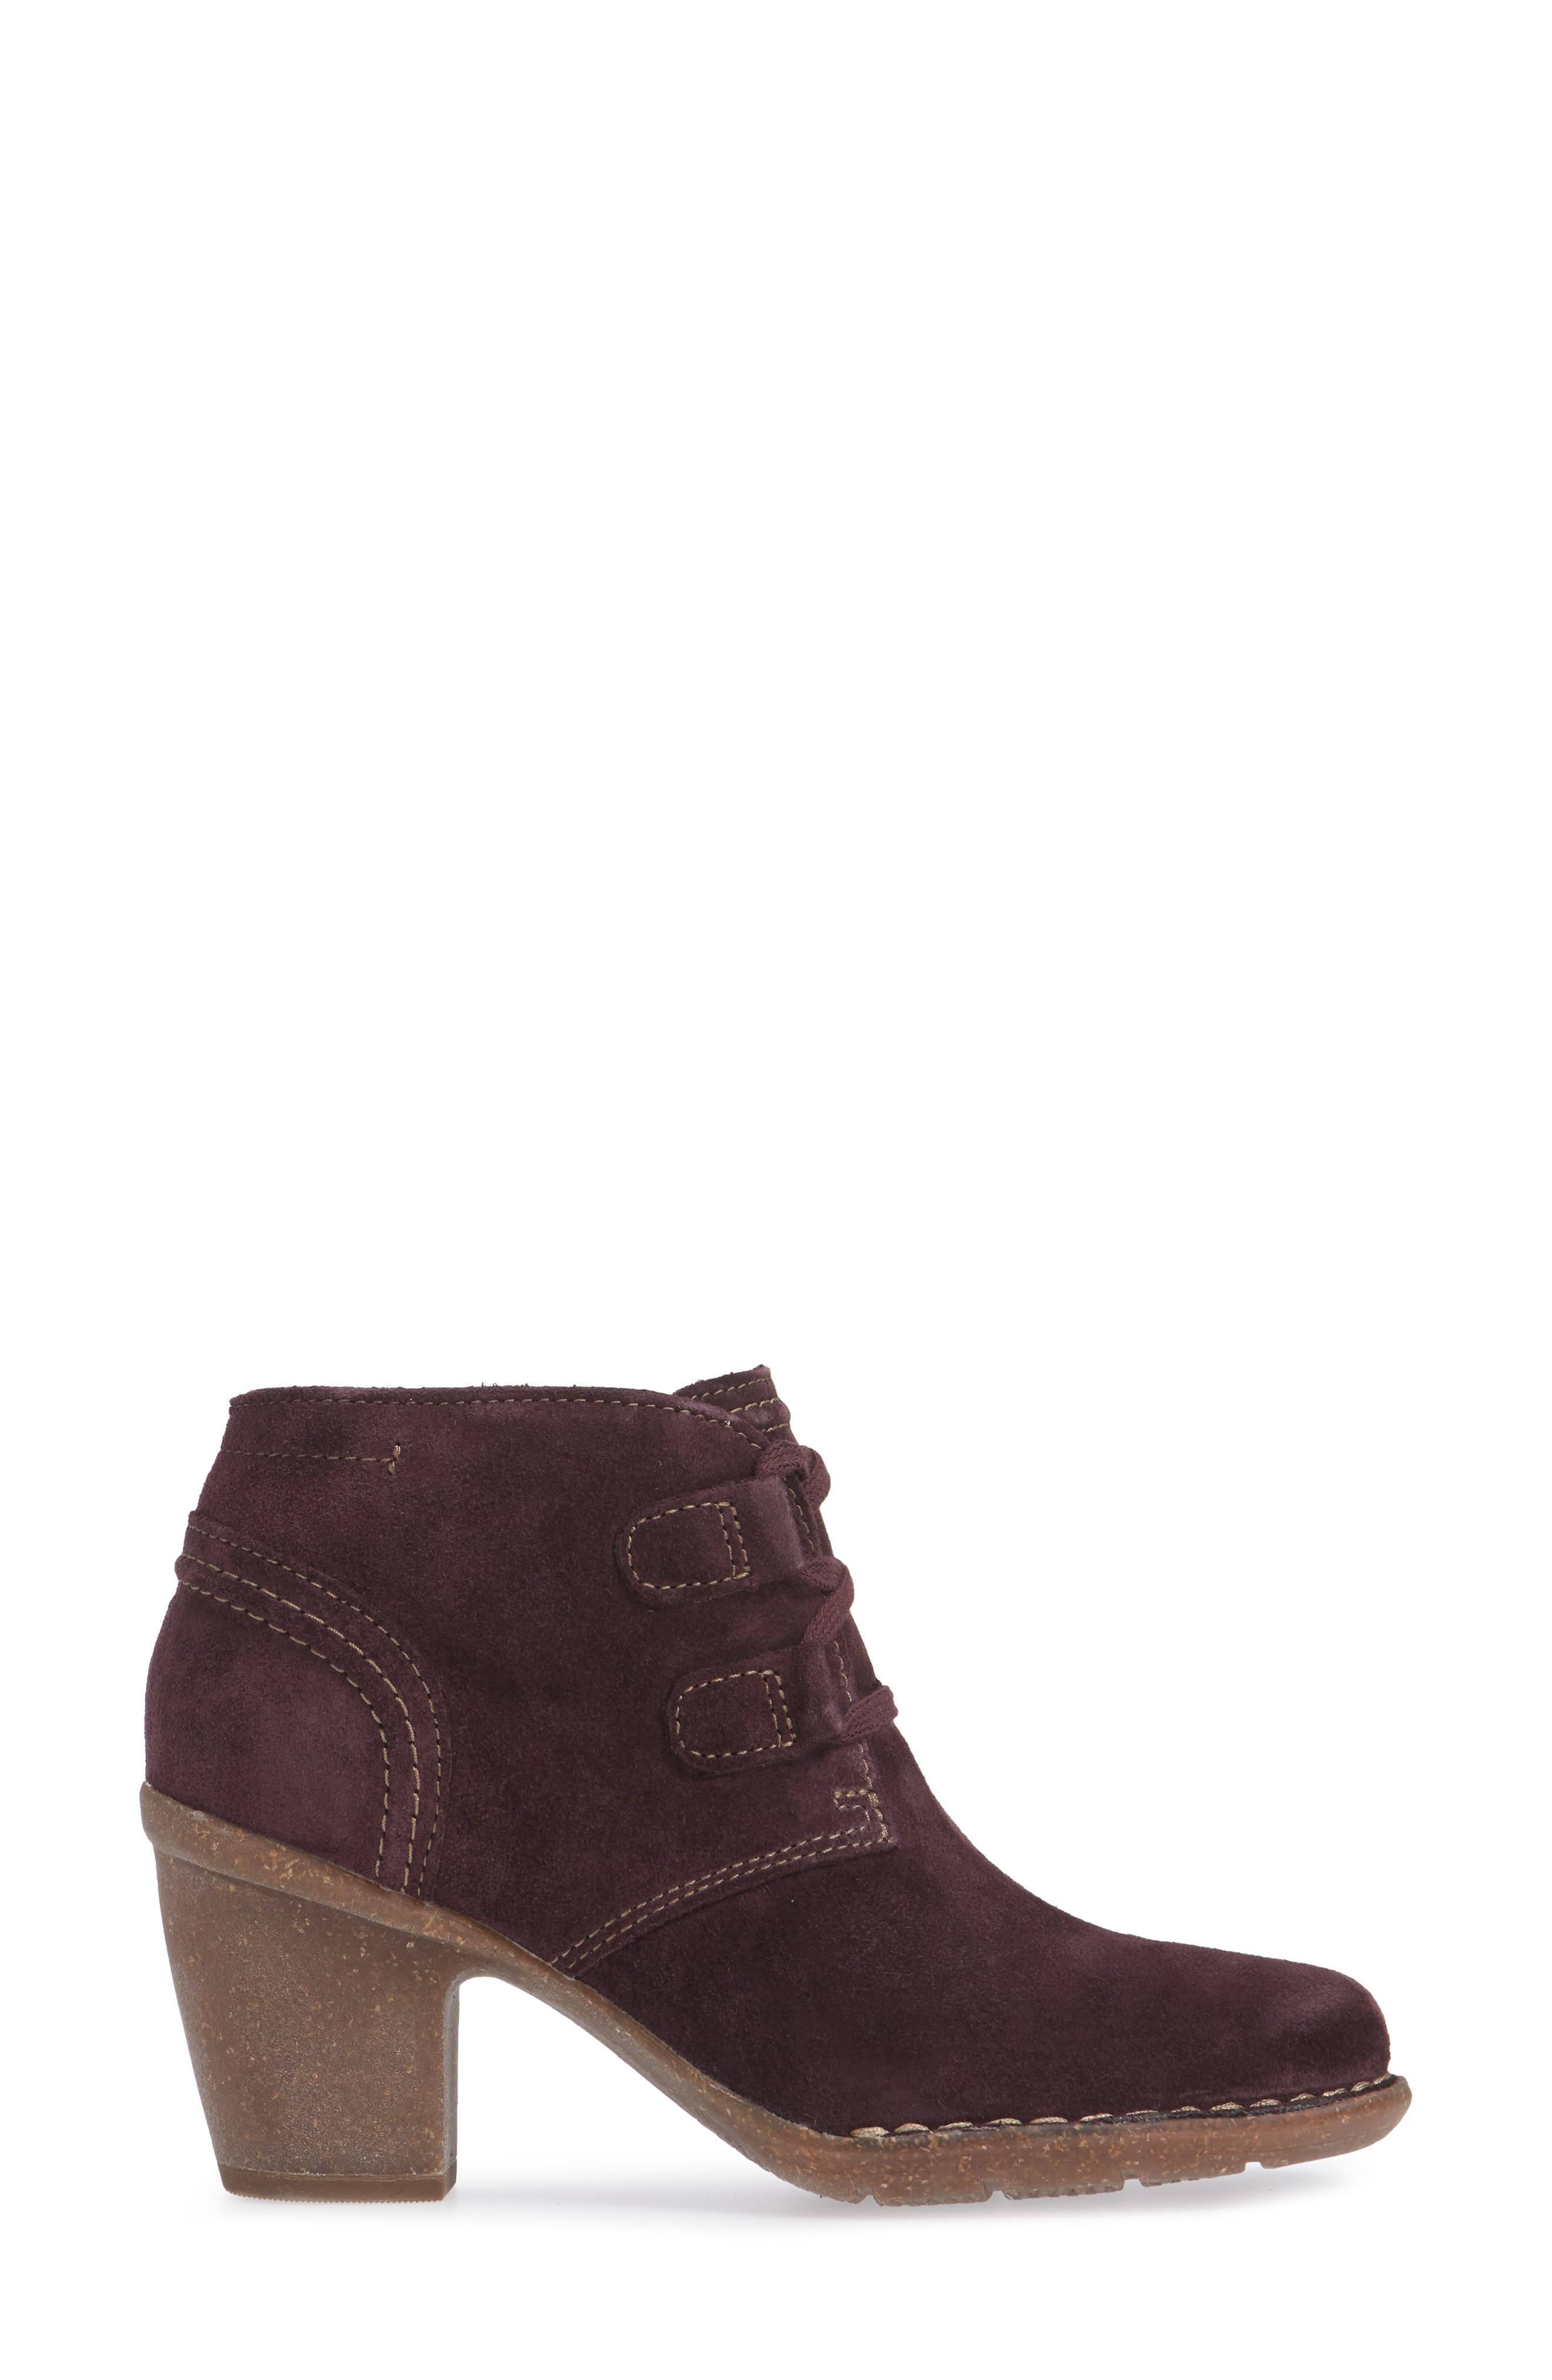 CLARKS<SUP>®</SUP>, Carleta Lyon Ankle Boot, Alternate thumbnail 3, color, AUBERGINE SUEDE